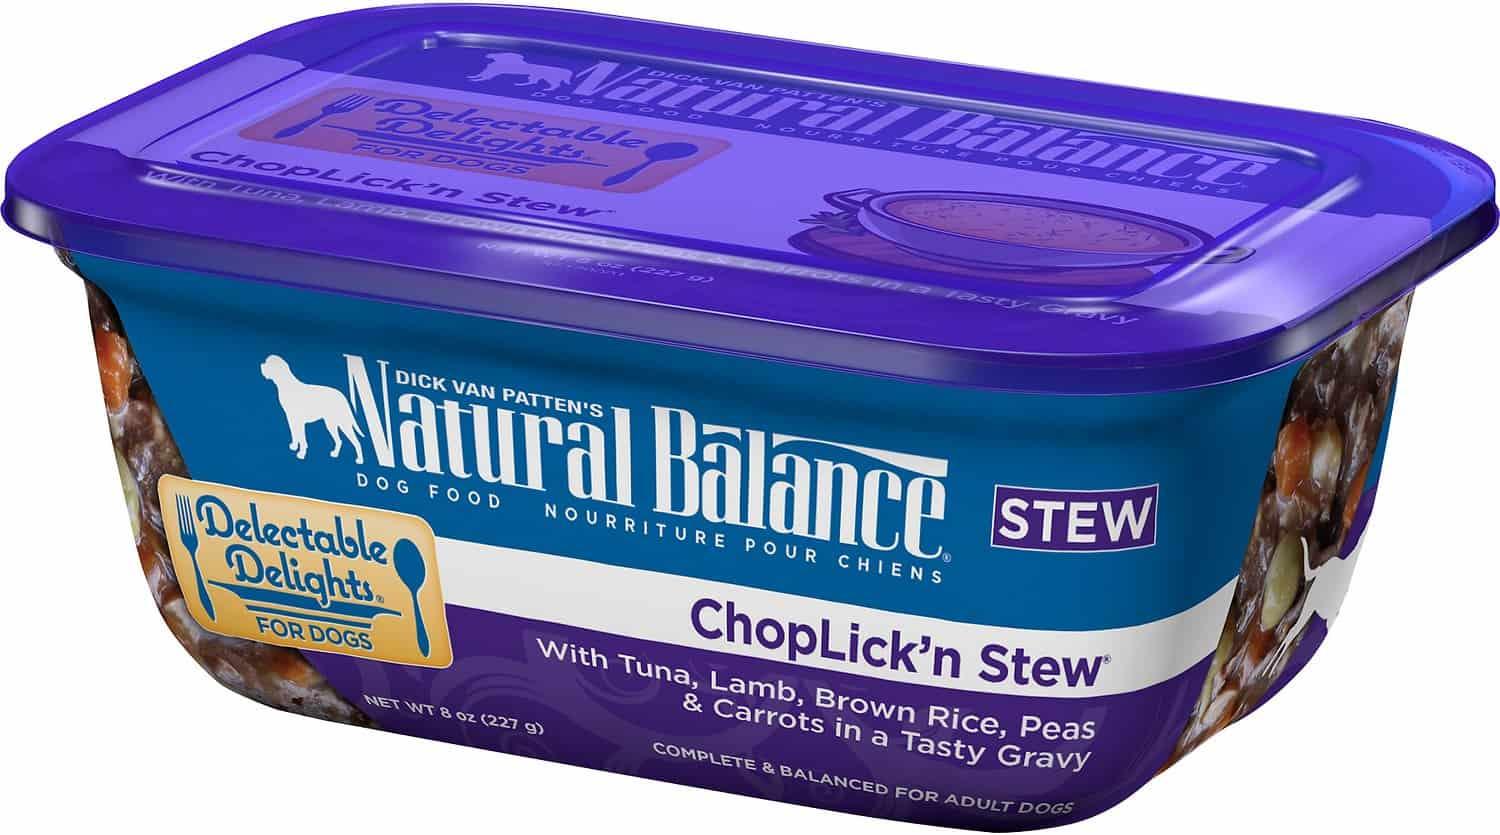 Natural Balance Dog Food Review 2021: Best High Quality Pet Food? 22